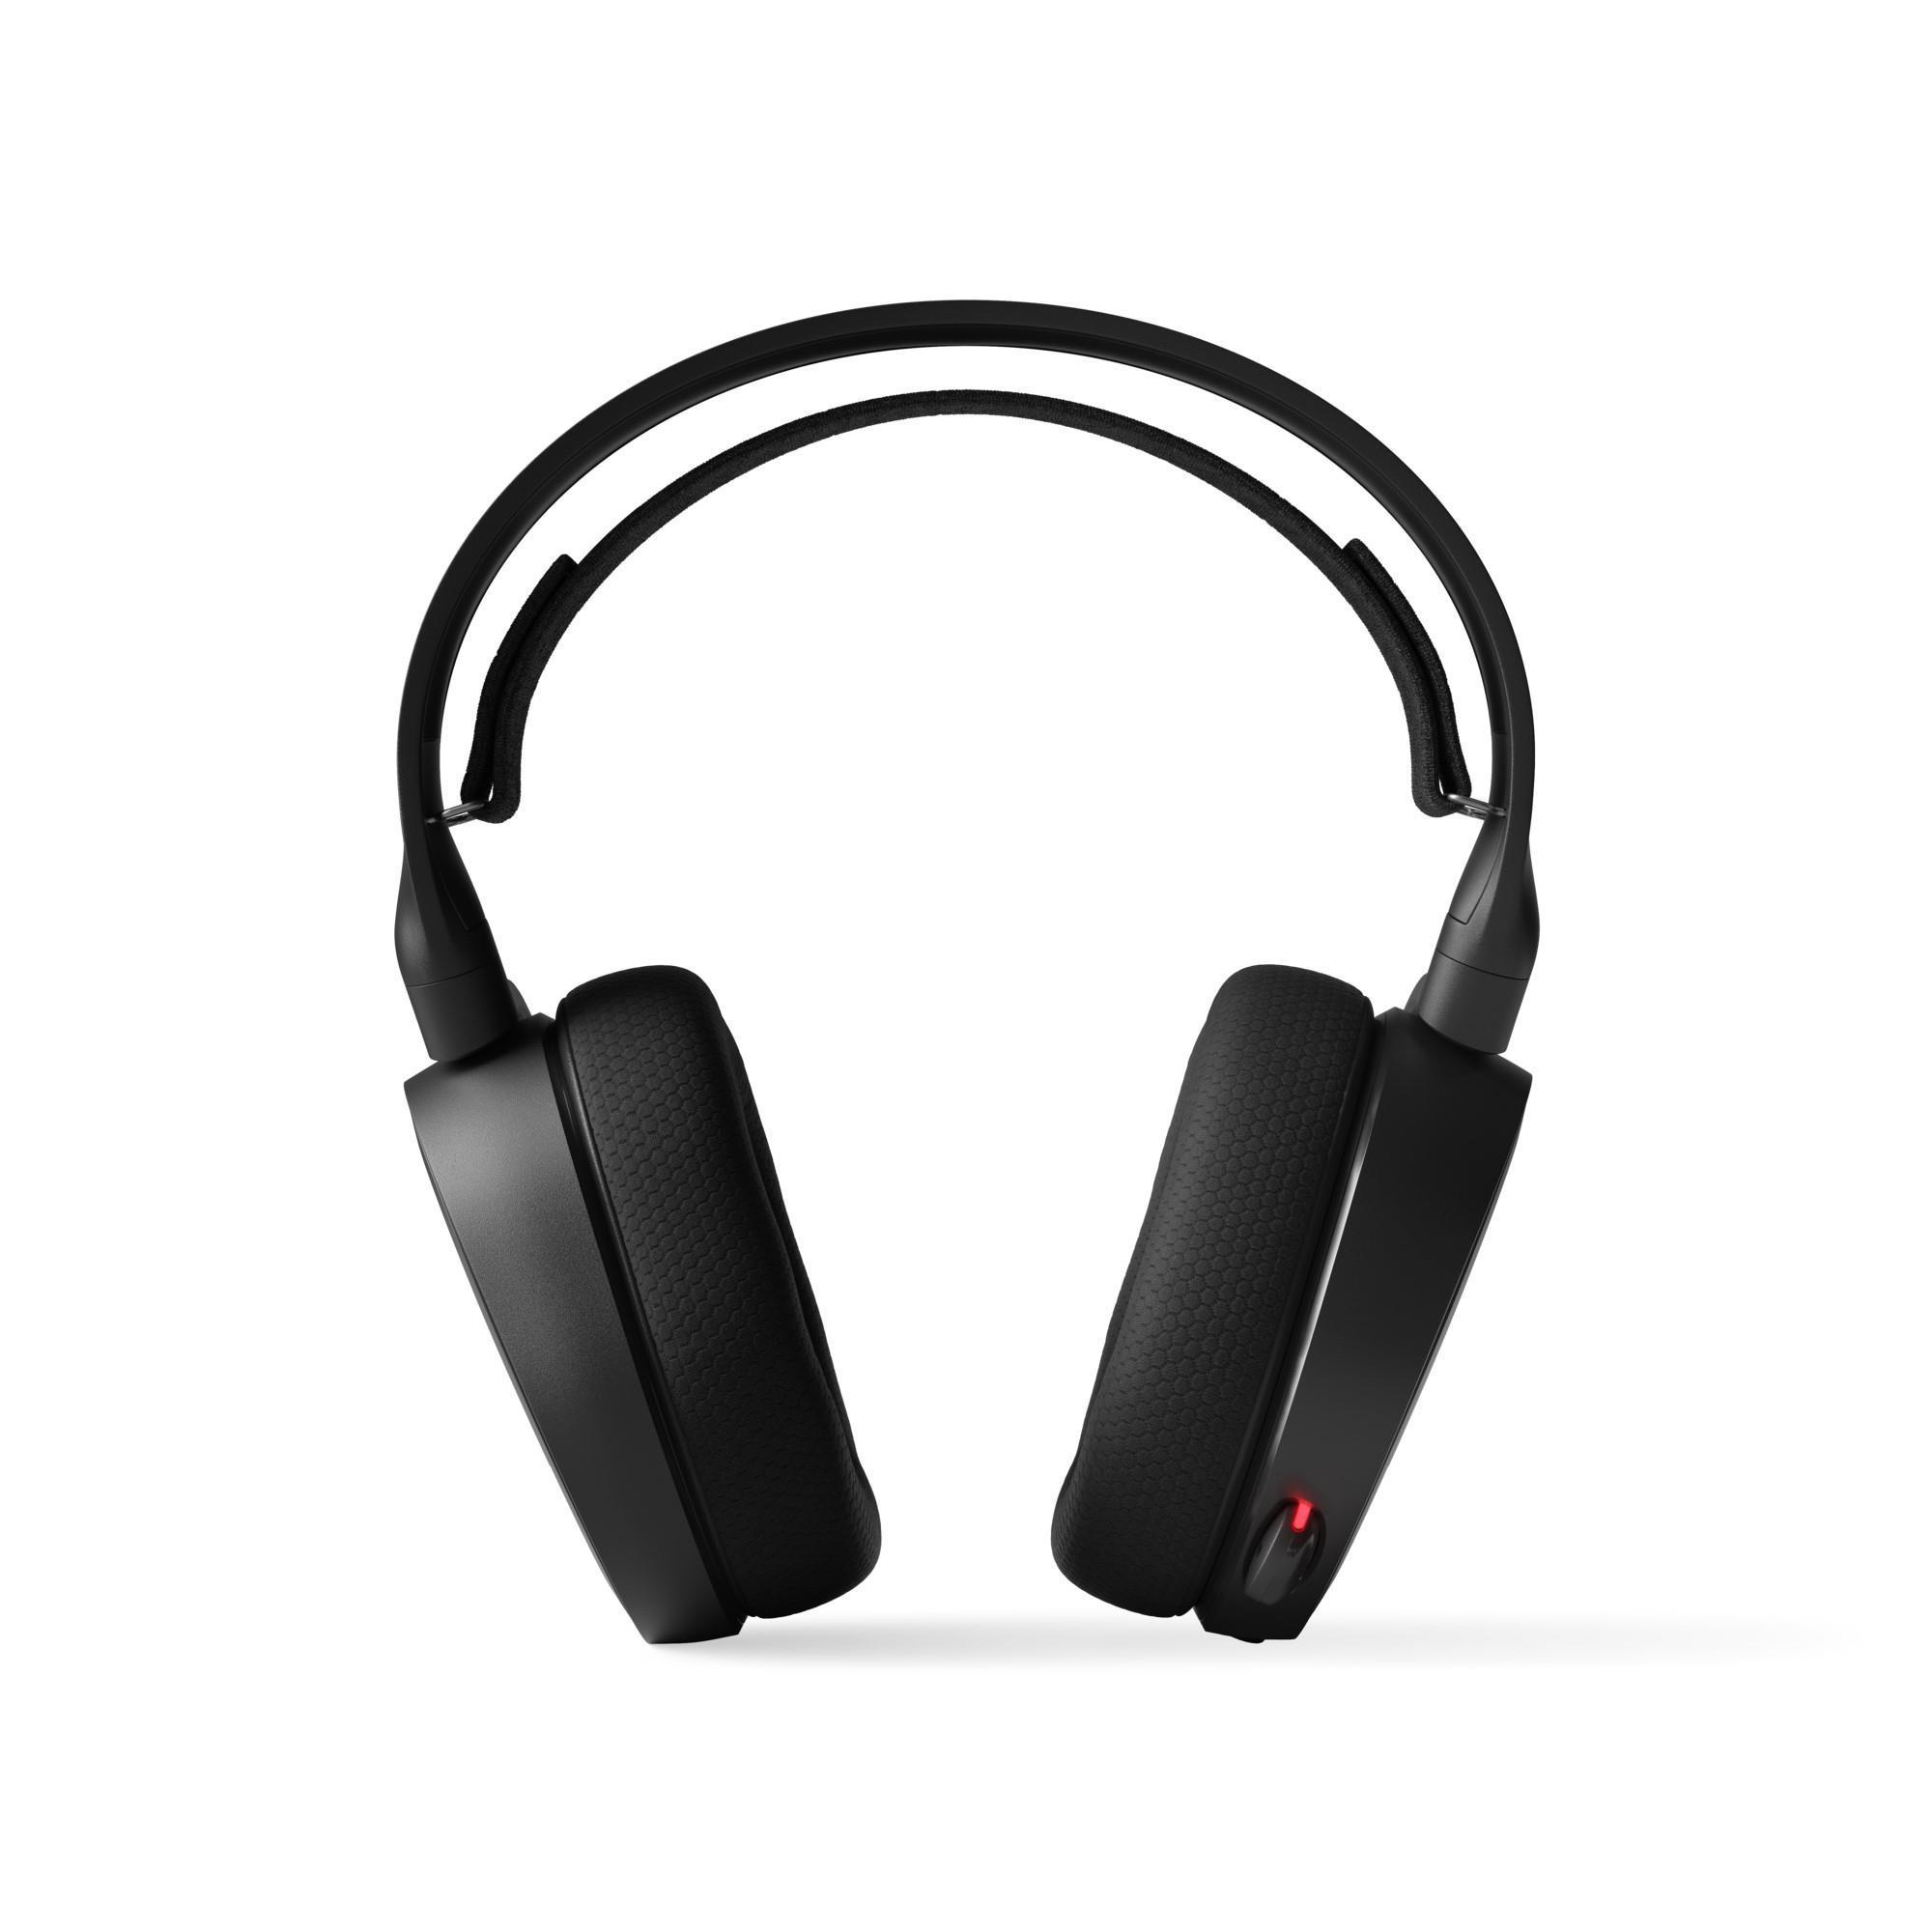 247d76d0e66 SteelSeries Arctis 5 Black (2019 Edition) Gaming Headset, 61504